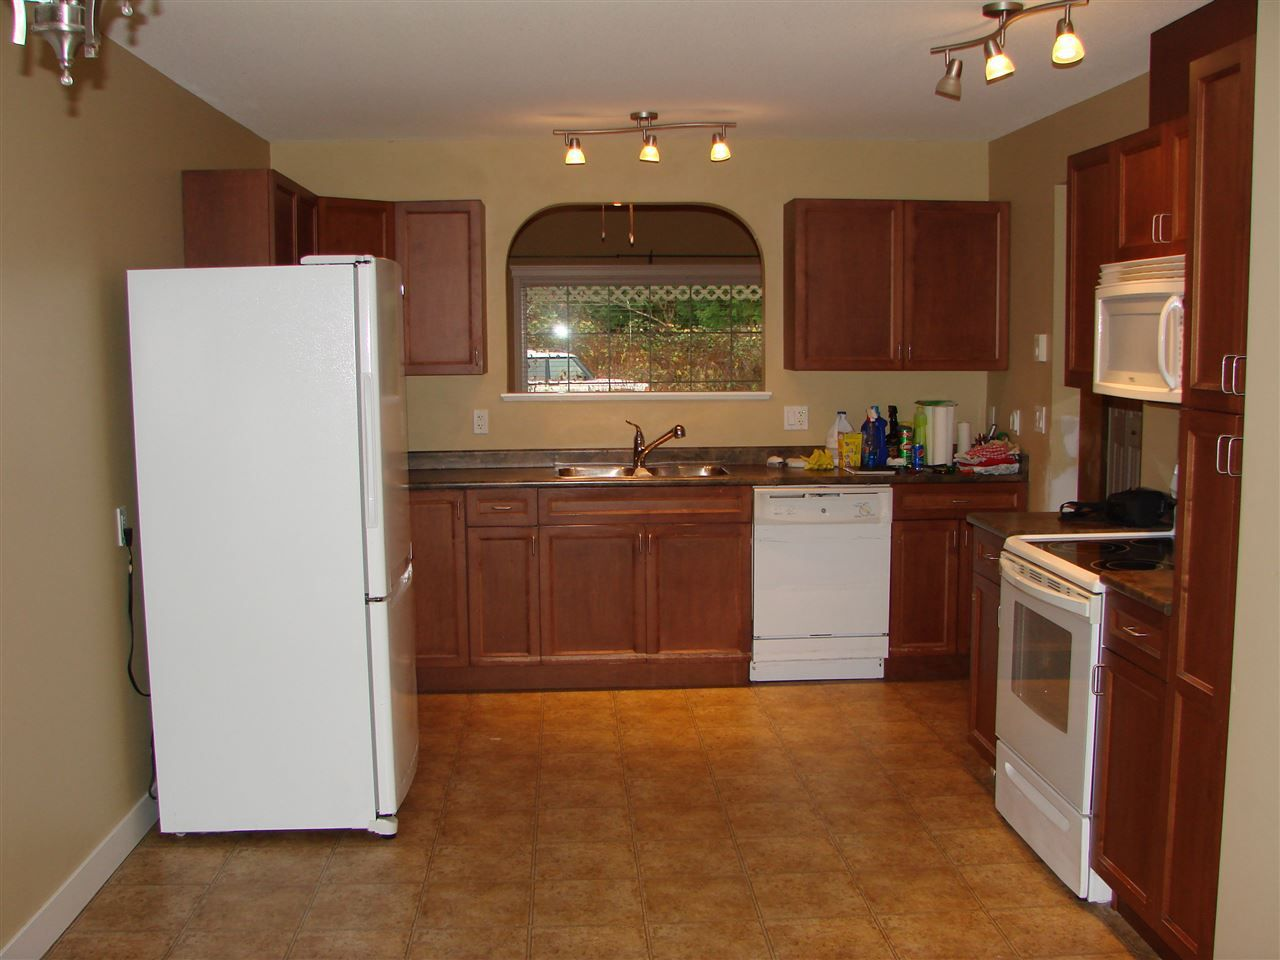 Photo 5: Photos: 6337 TOWER Road in Sechelt: Sechelt District House for sale (Sunshine Coast)  : MLS®# R2225520